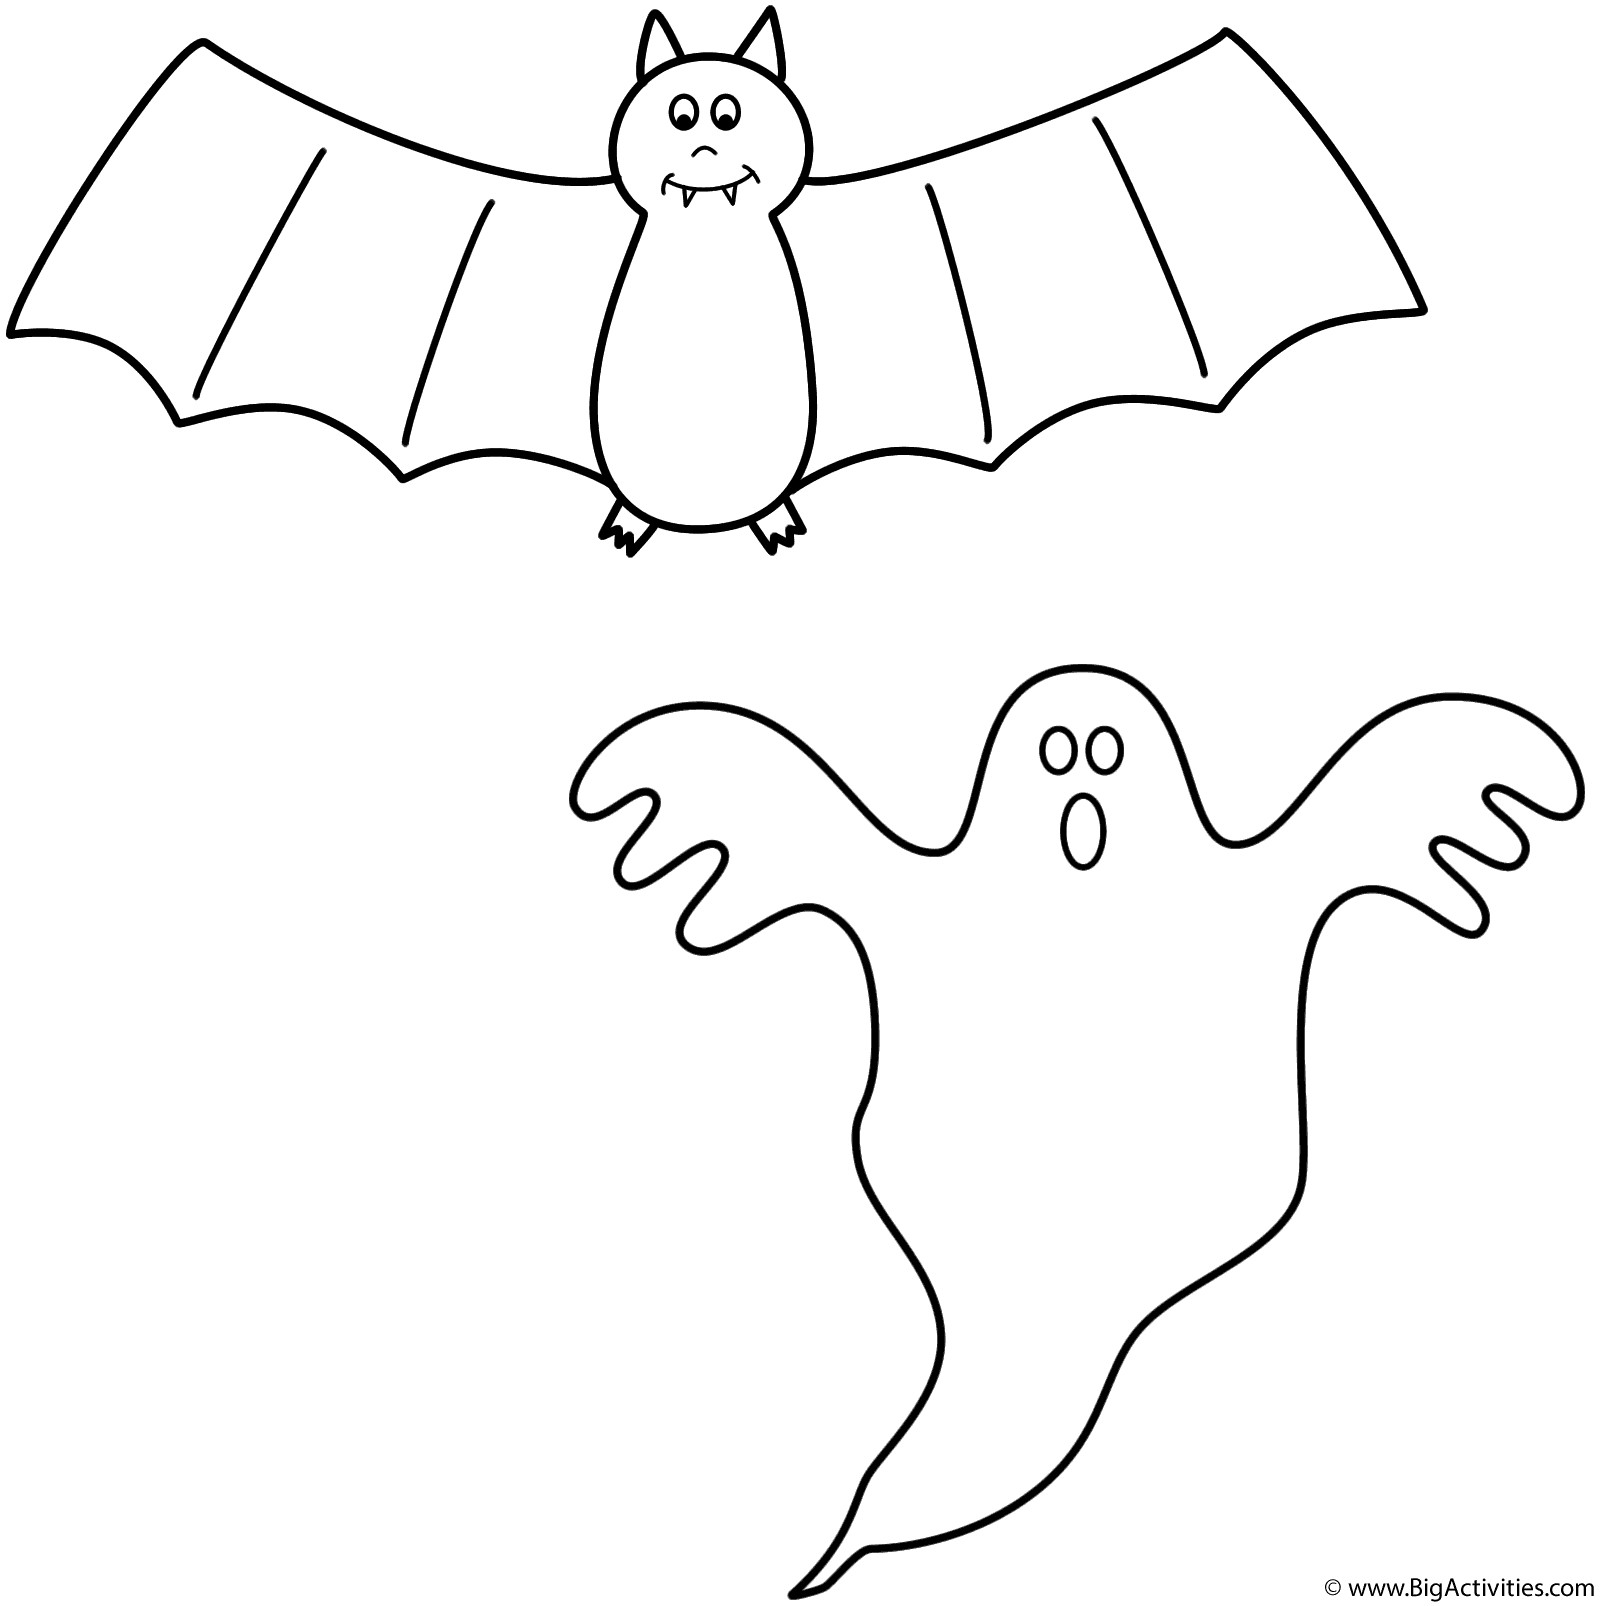 1606x1606 Halloween Bat Coloring Pages For Kids Unique With Ghost Page